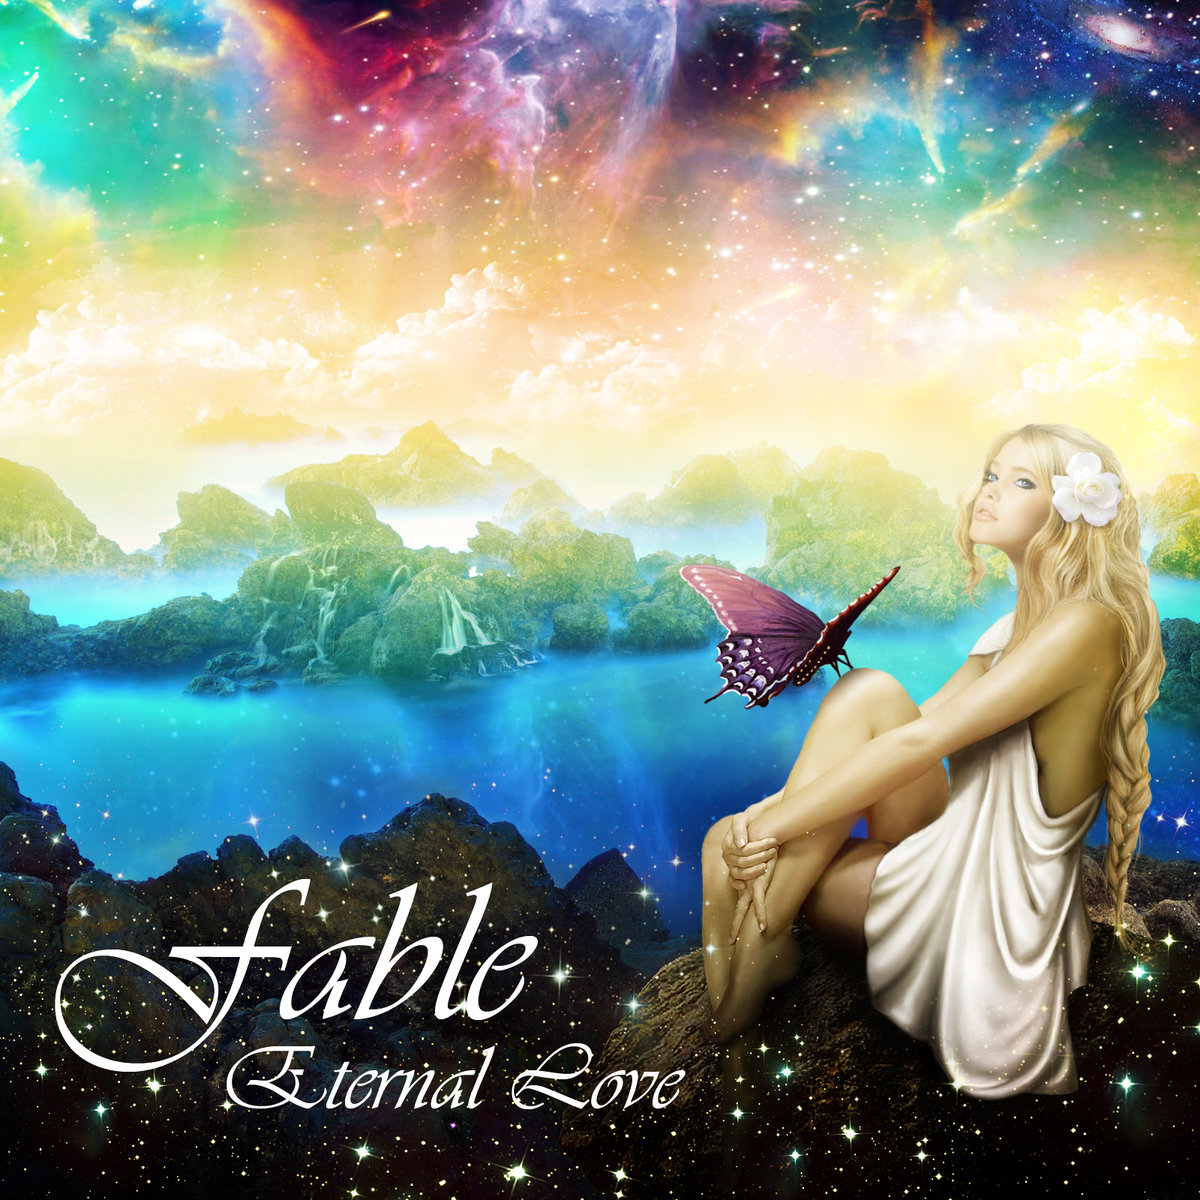 Eternal Love - Early One Morning @ 'Fable' album (ambient, chill)